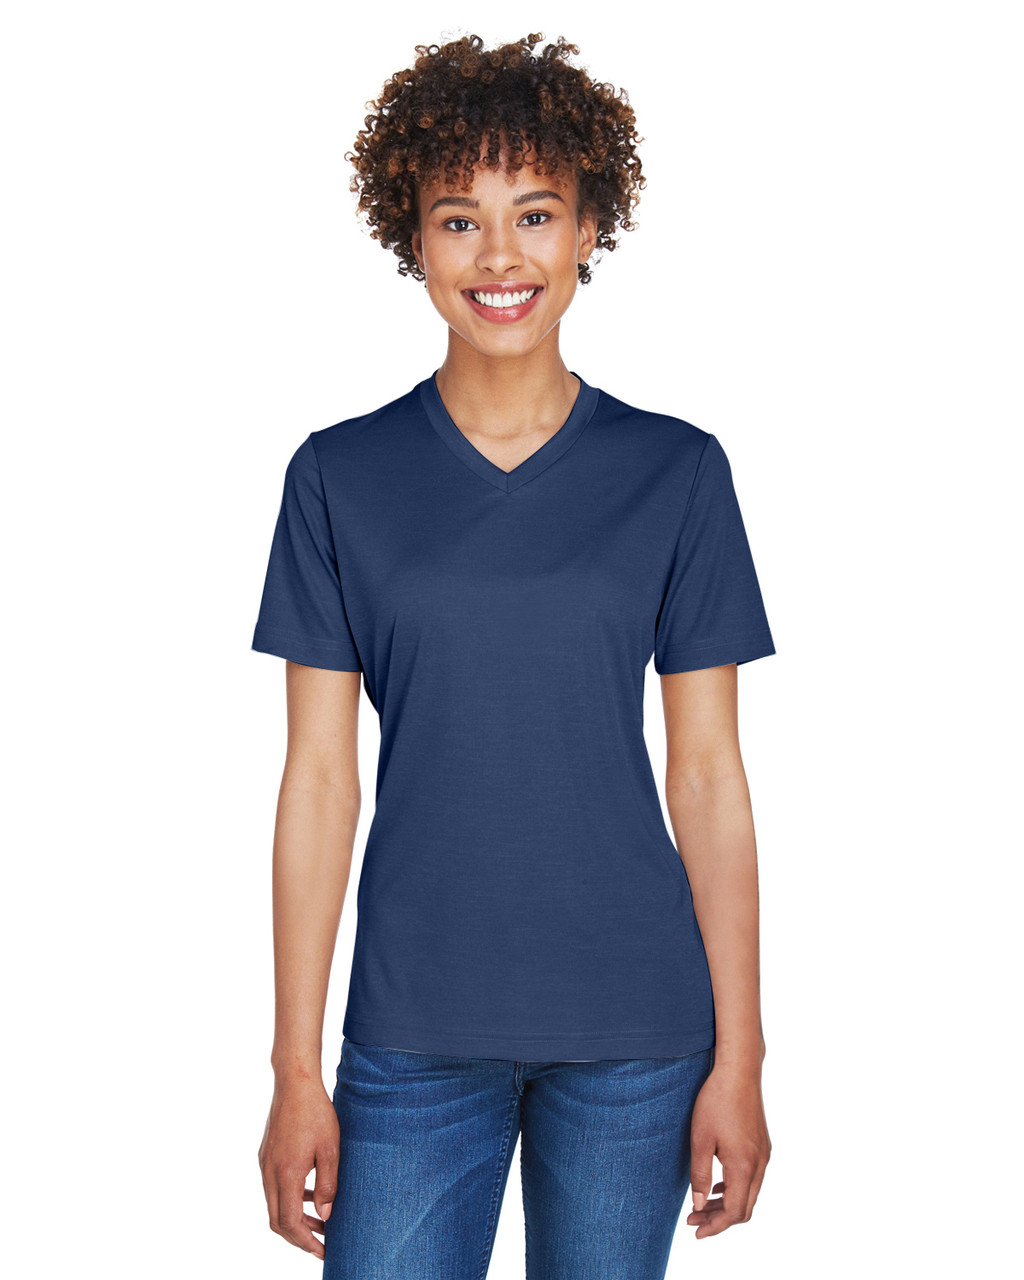 Sport Dark Navy Heather - TT11HW Team 365 Ladies' Sonic Heather Performance T-Shirt | BlankClothing.ca